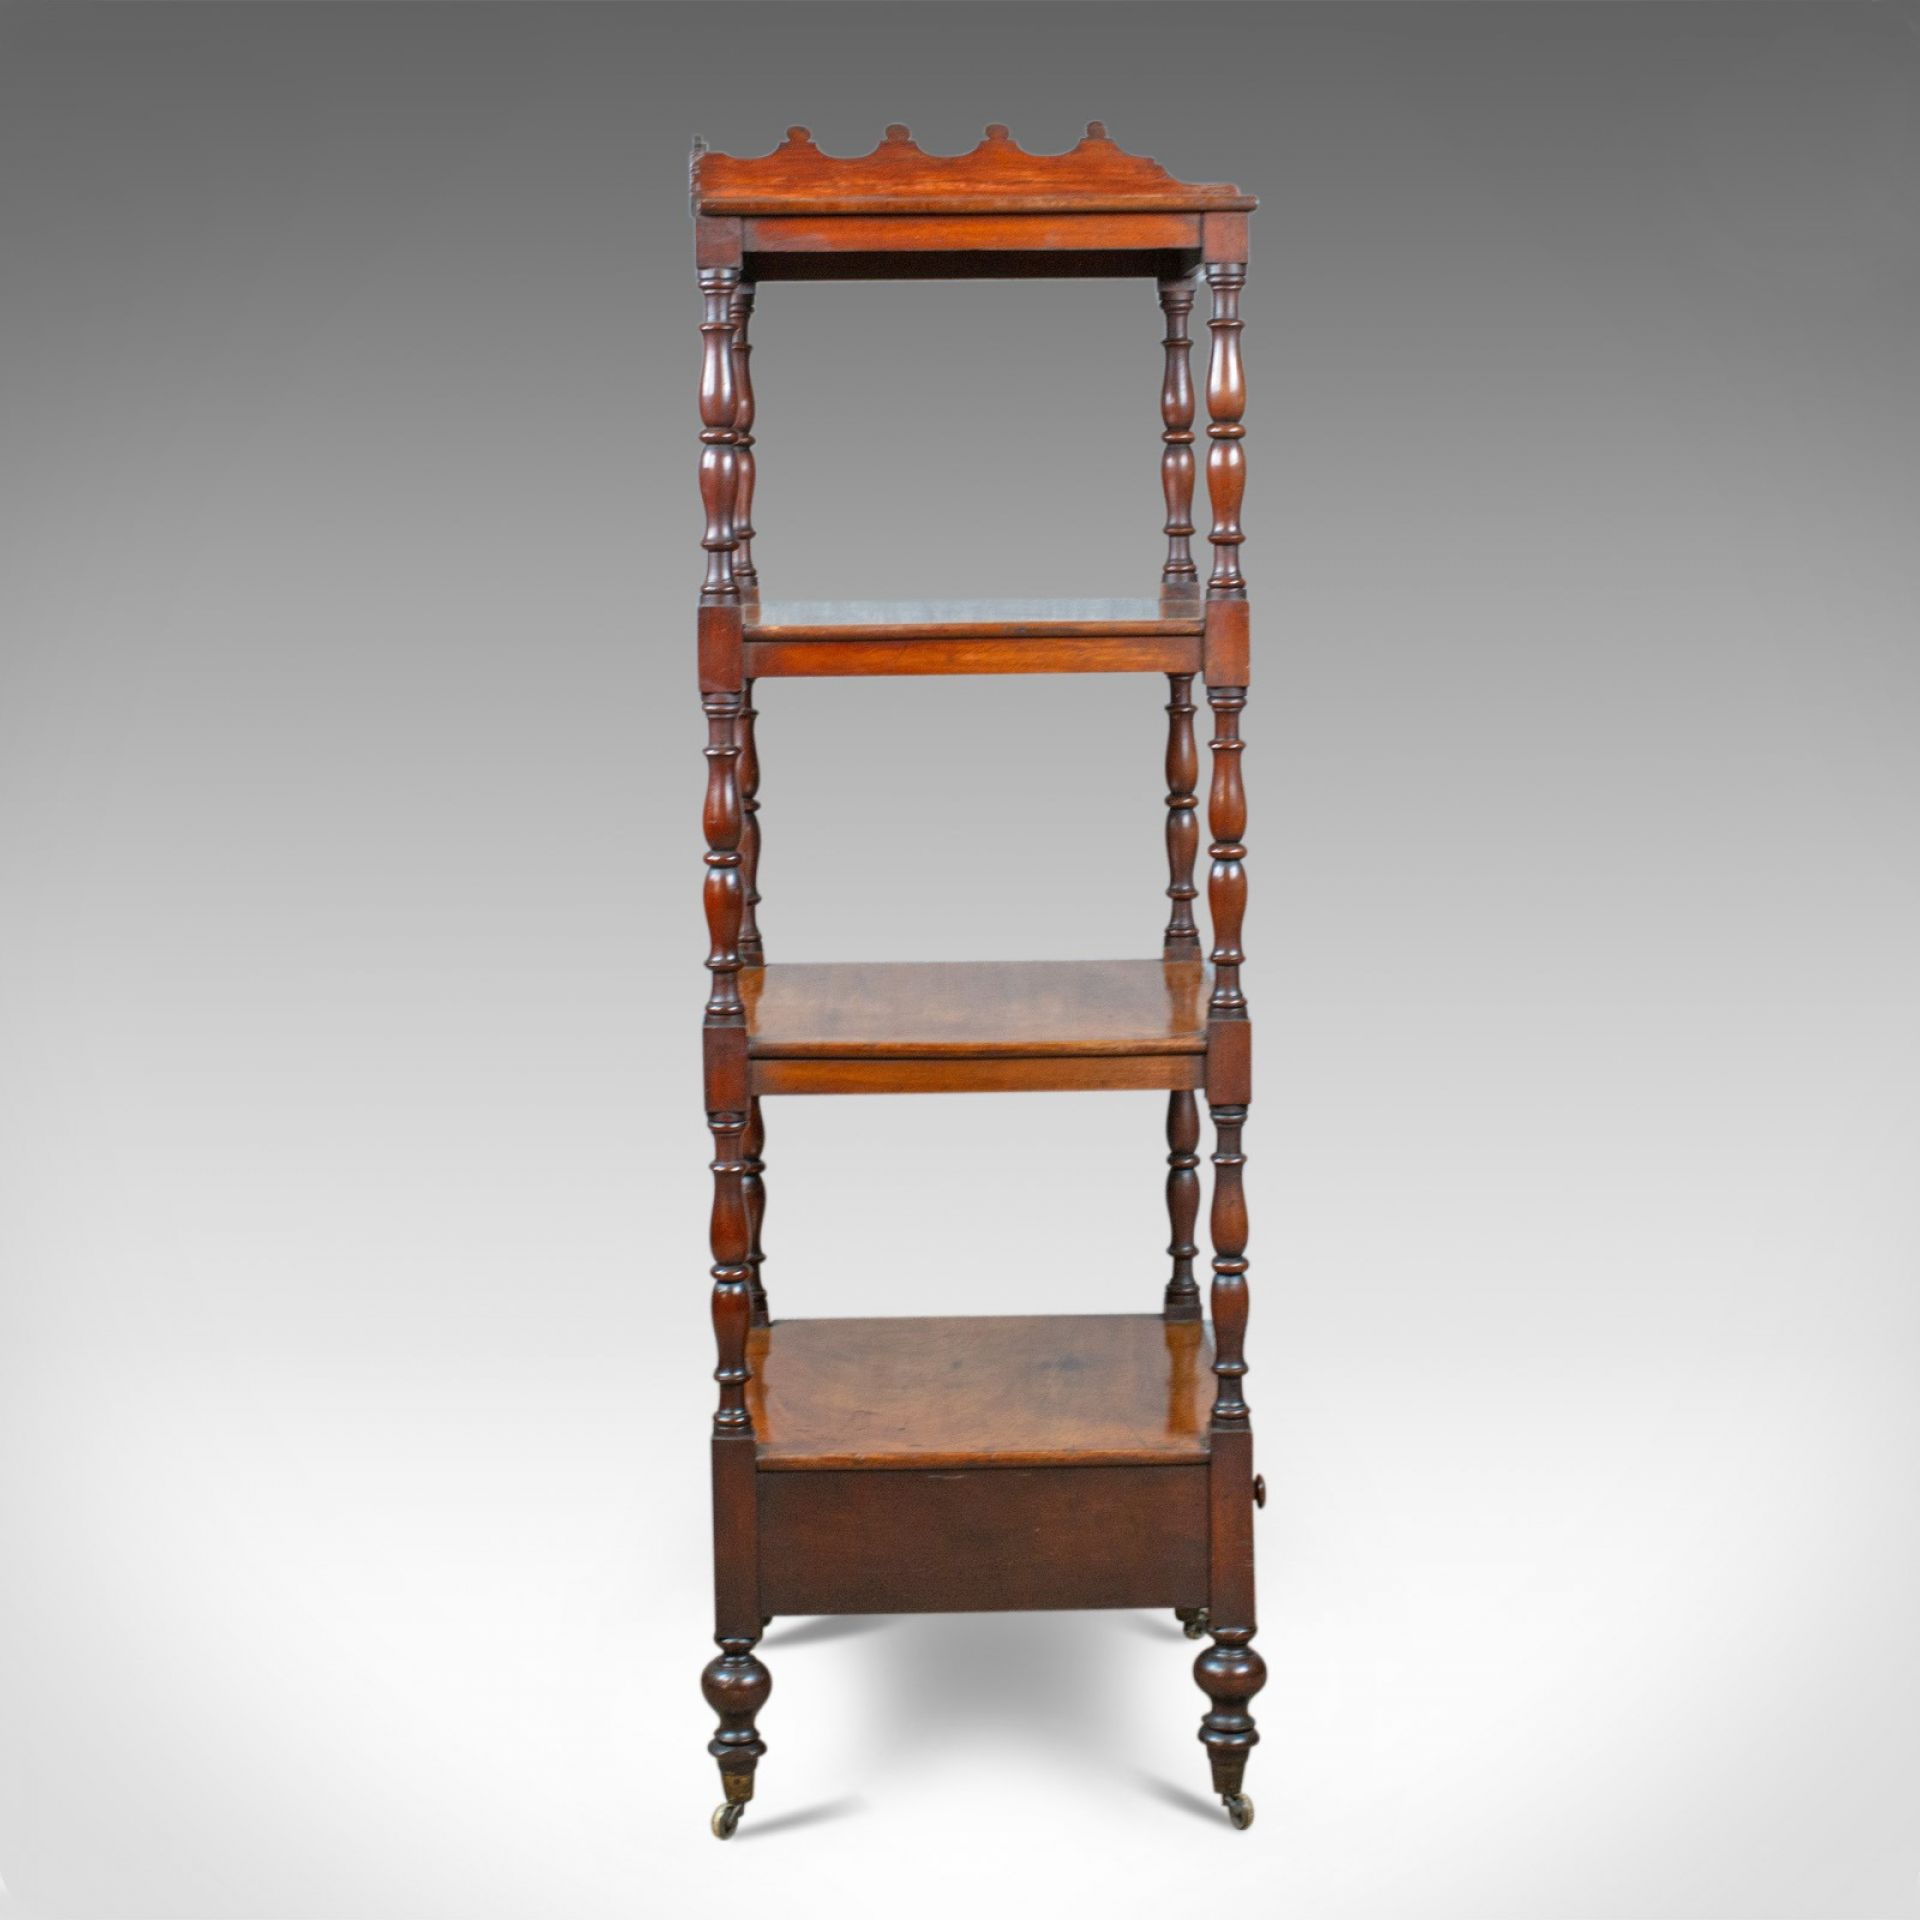 Antique Whatnot, English, Mahogany, Four Tier, Regency, Display Stand, c.1820